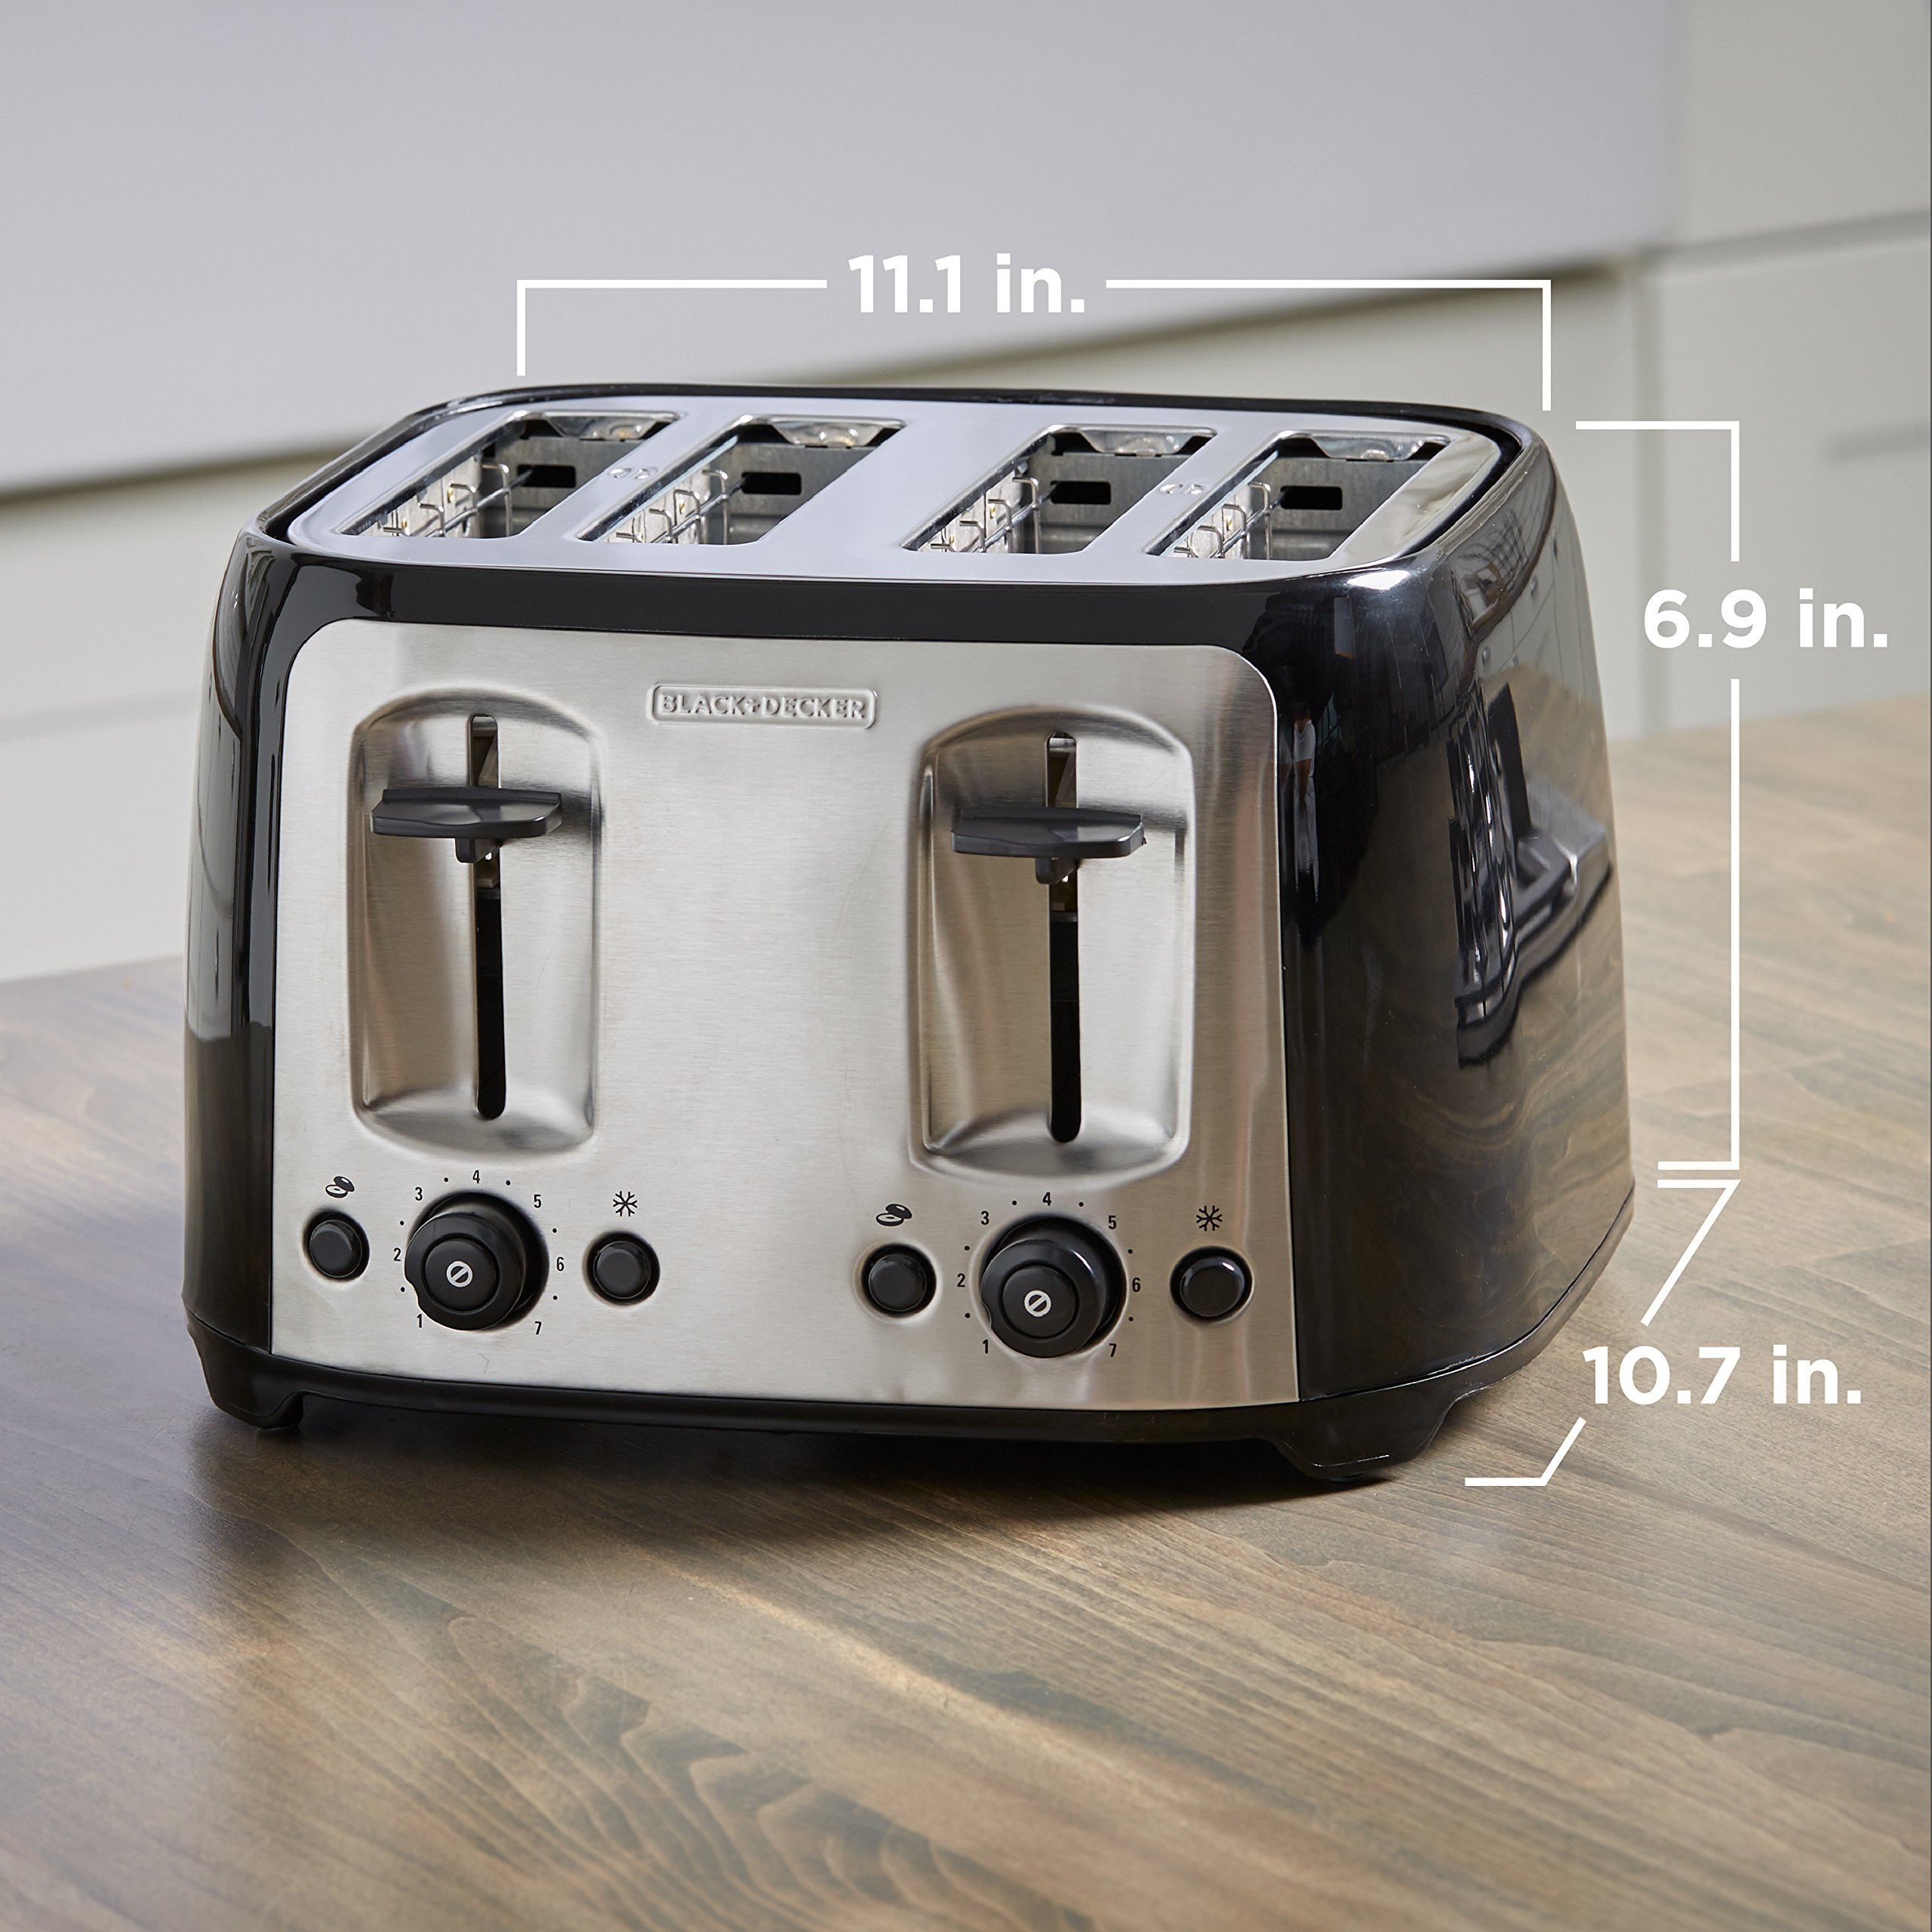 BLACK+DECKER 4-Slice Toaster, Classic Oval, Black with Stainless Steel Accents, TR1478BD by BLACK+DECKER (Image #6)